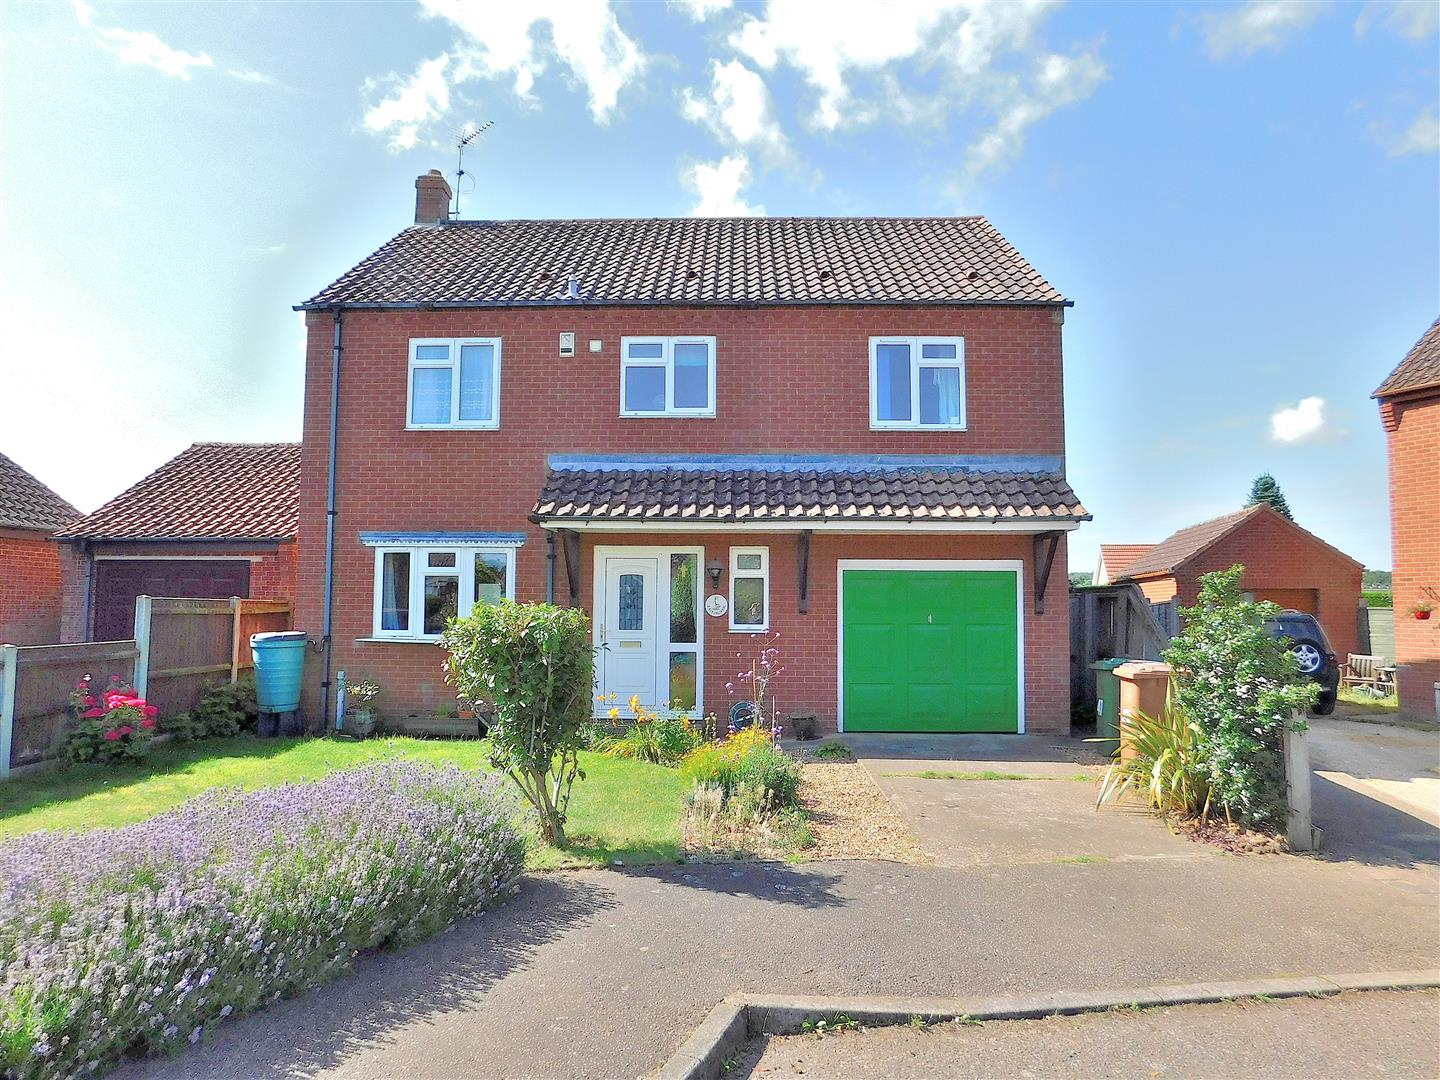 4 bed detached house for sale in King's Lynn, PE31 6JT  - Property Image 1